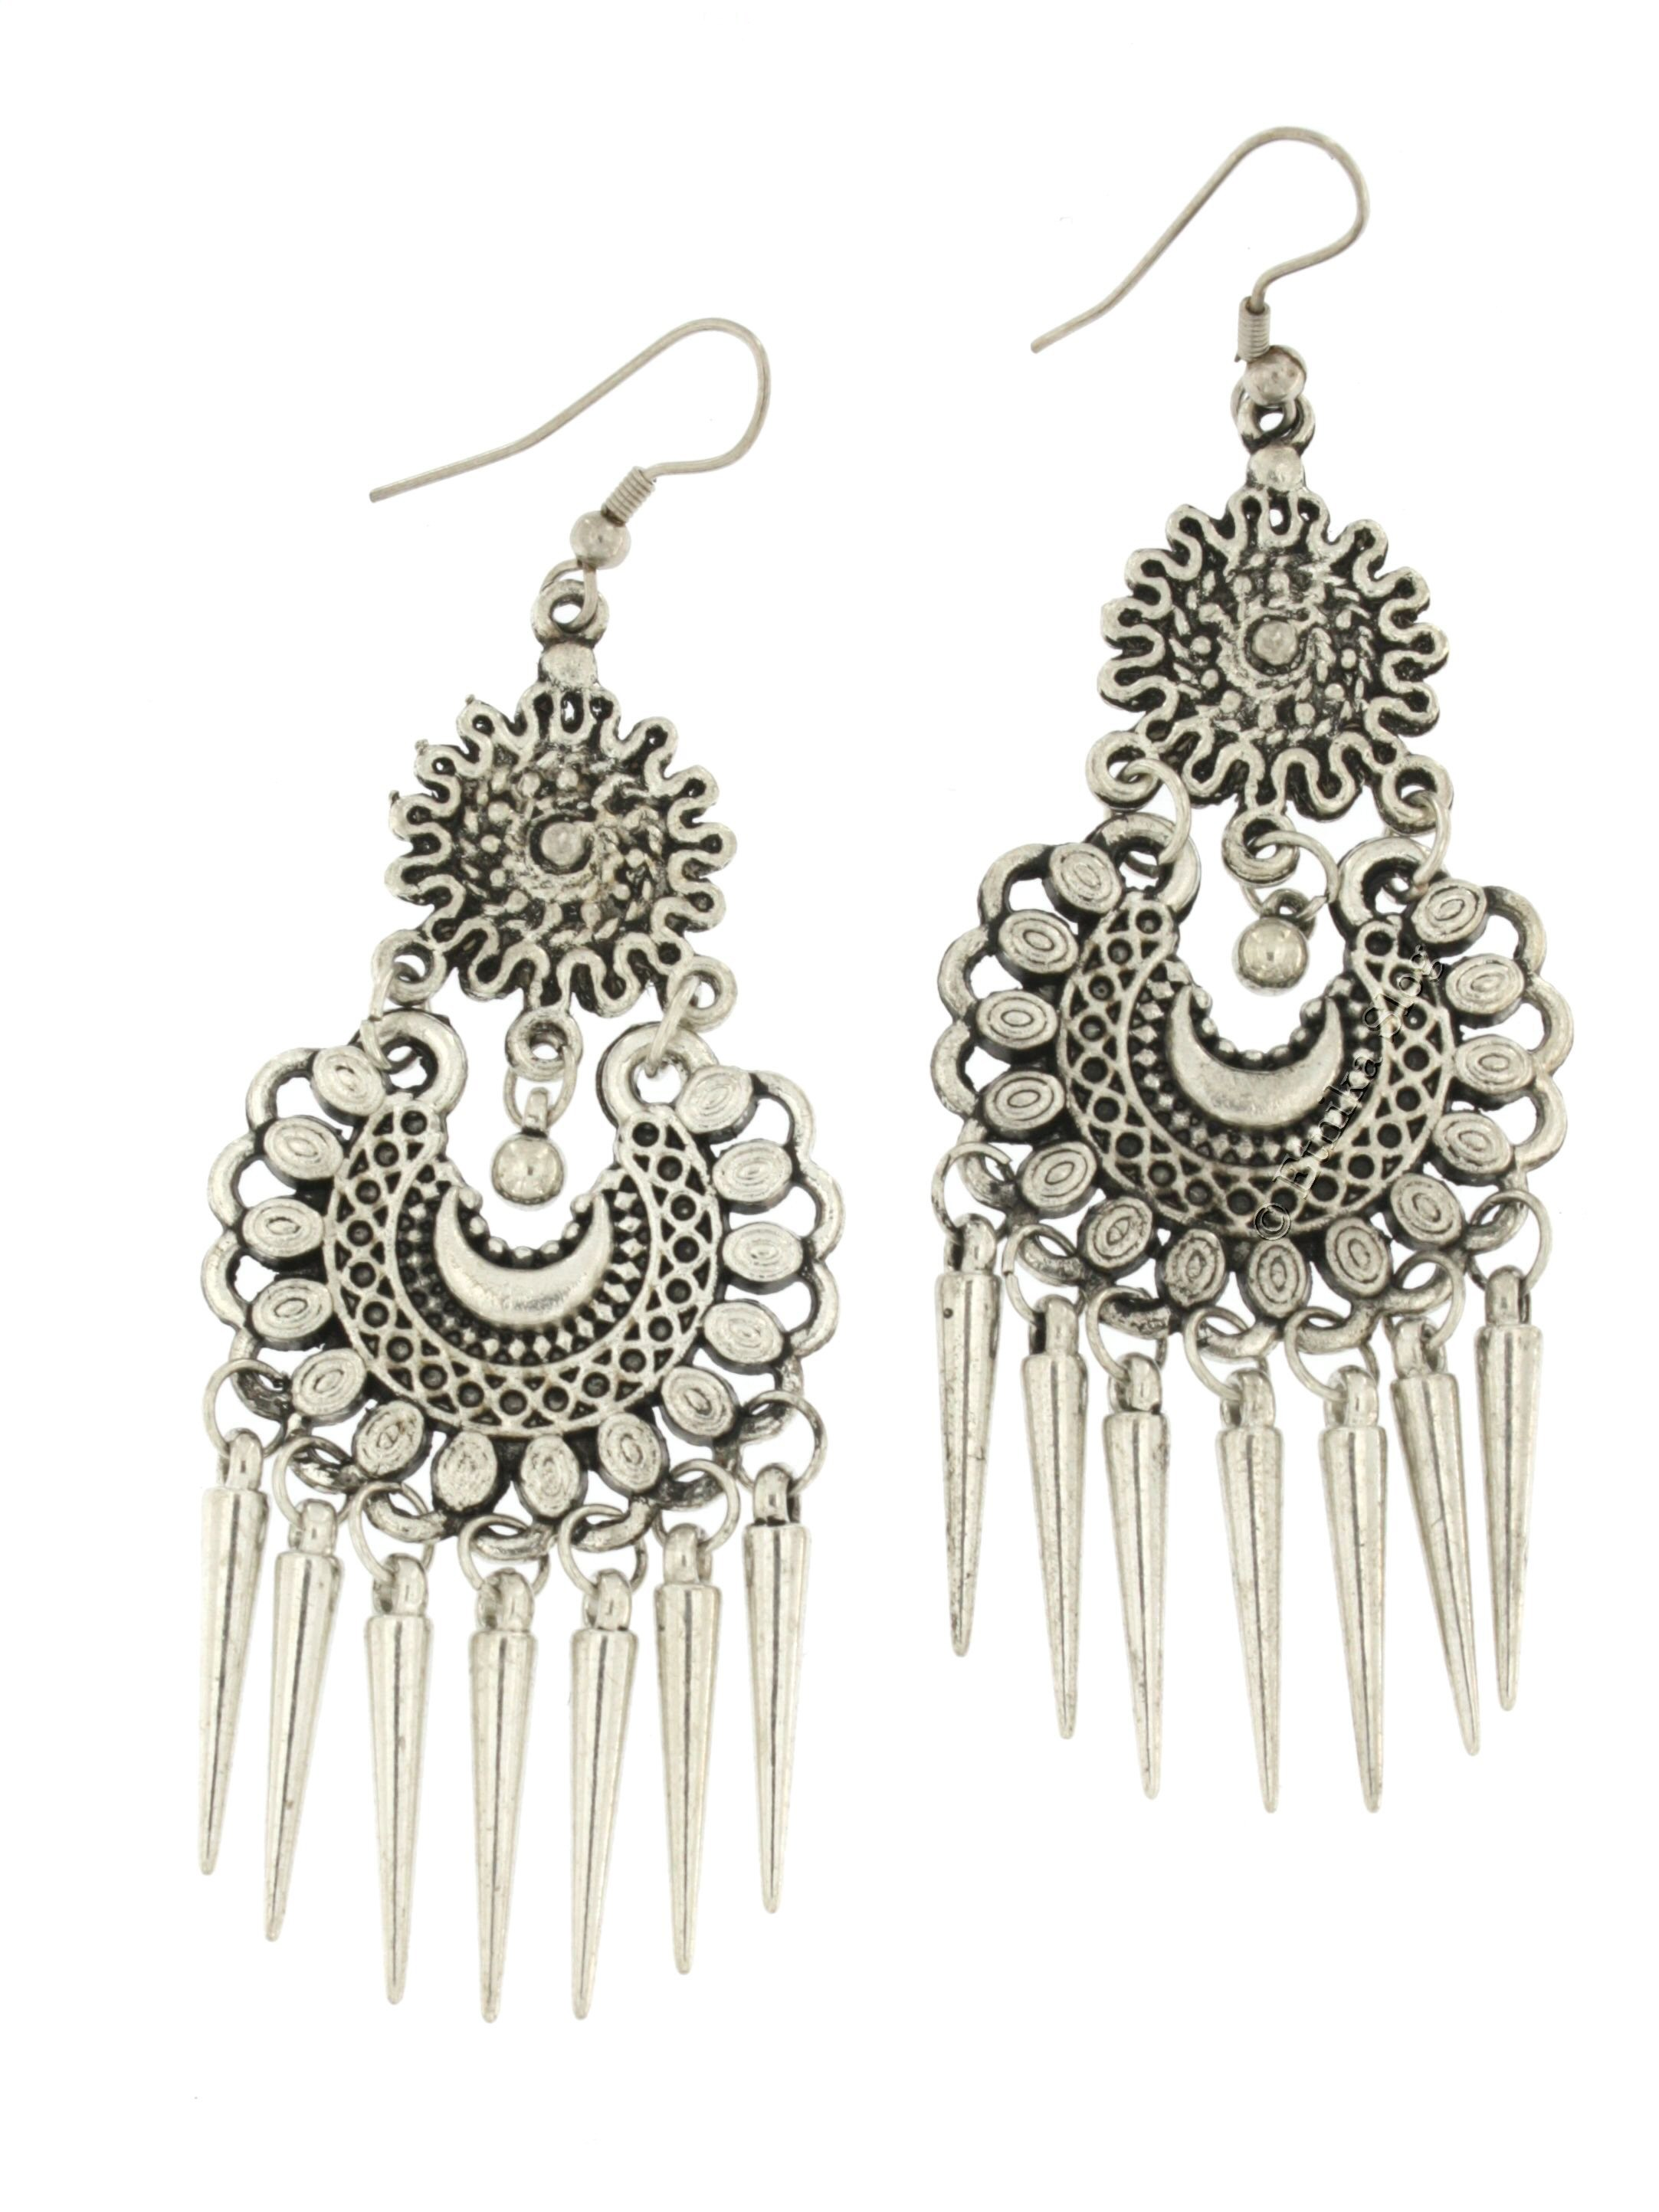 EARRINGS - METAL MB-OR200-13 - com Etnika Slog d.o.o.